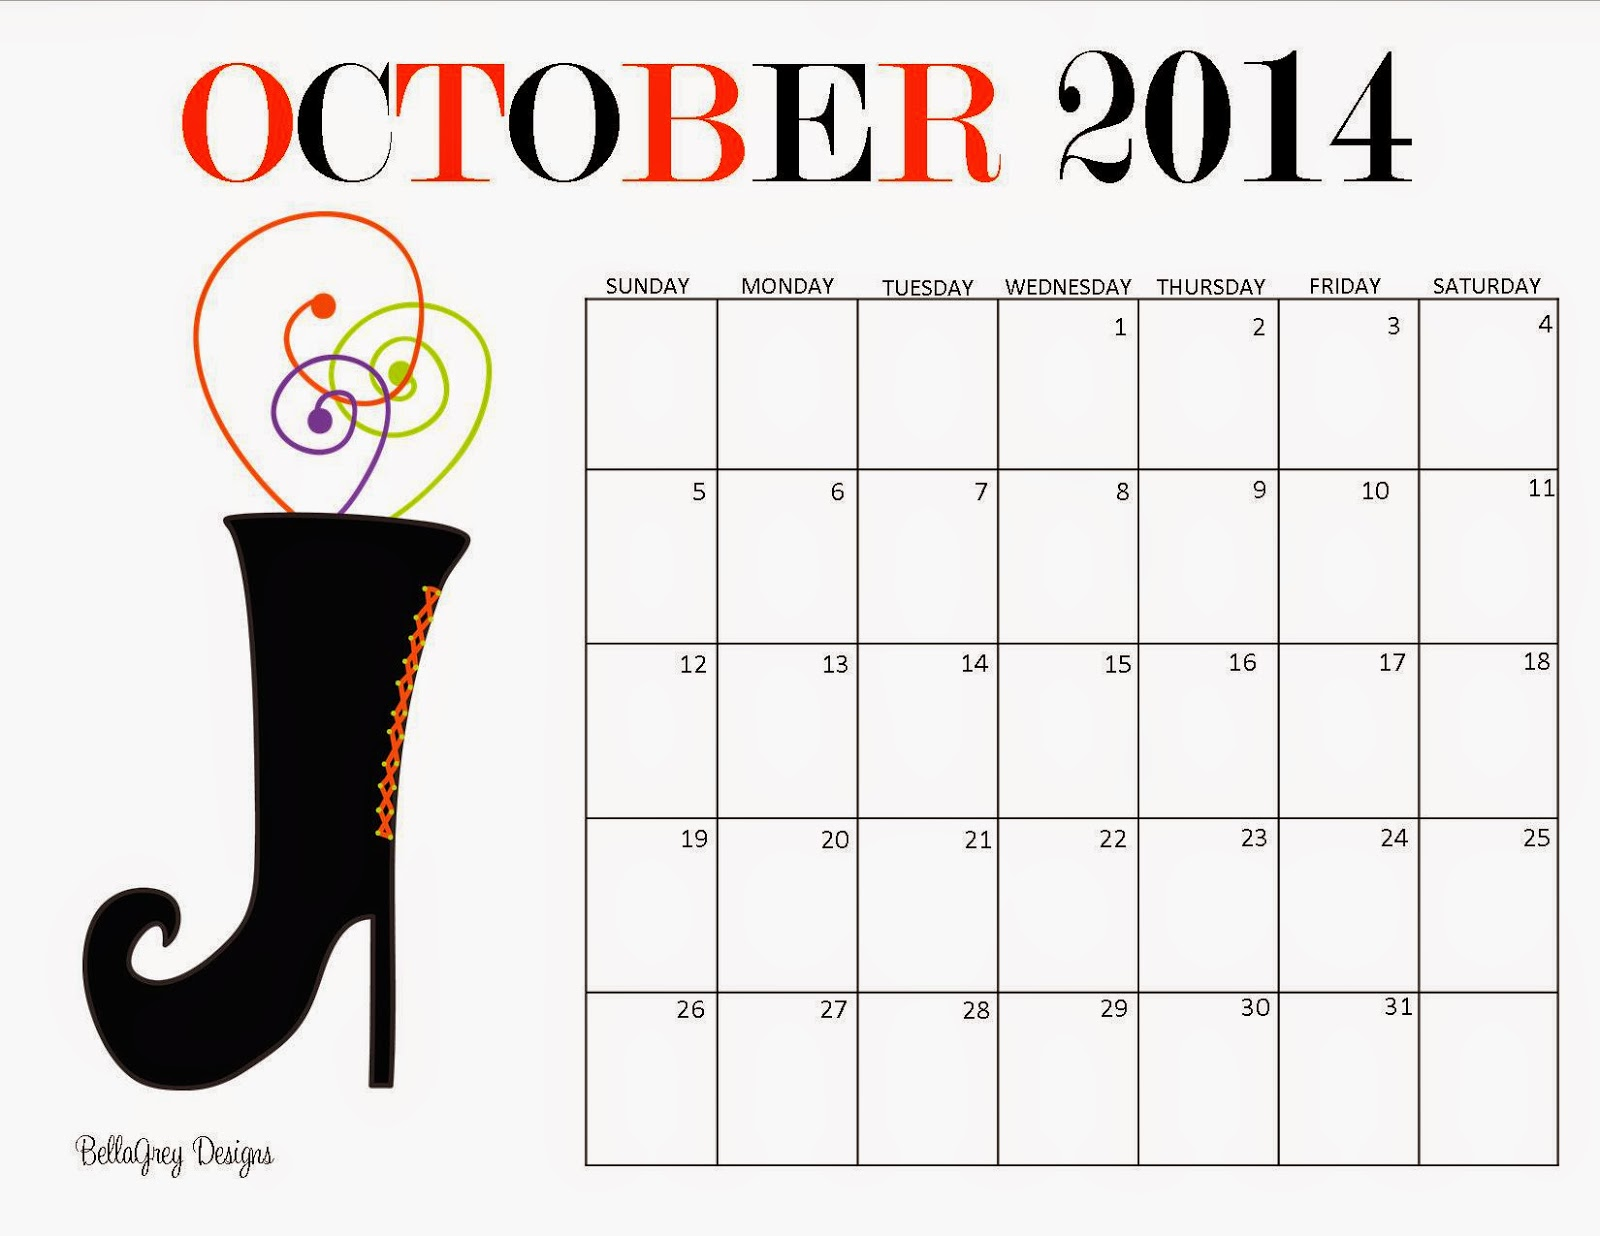 BellaGrey Designs: October Calendar FREE Printable